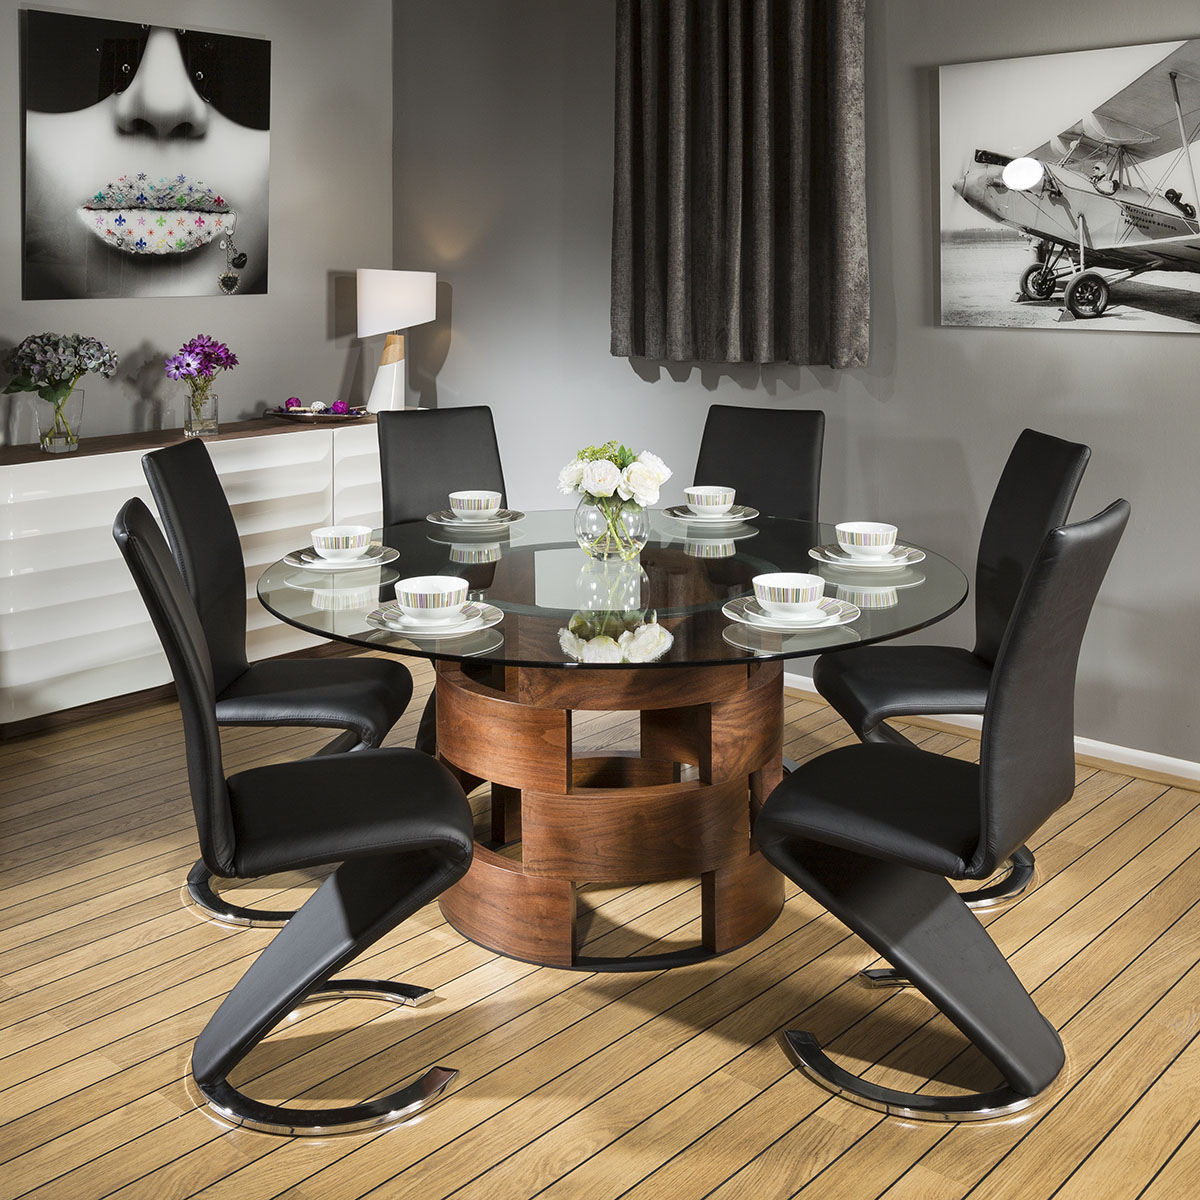 Sentinel Huge Round Glass Top Walnut Dining Table Set 6 Black Z Shaped Chairs